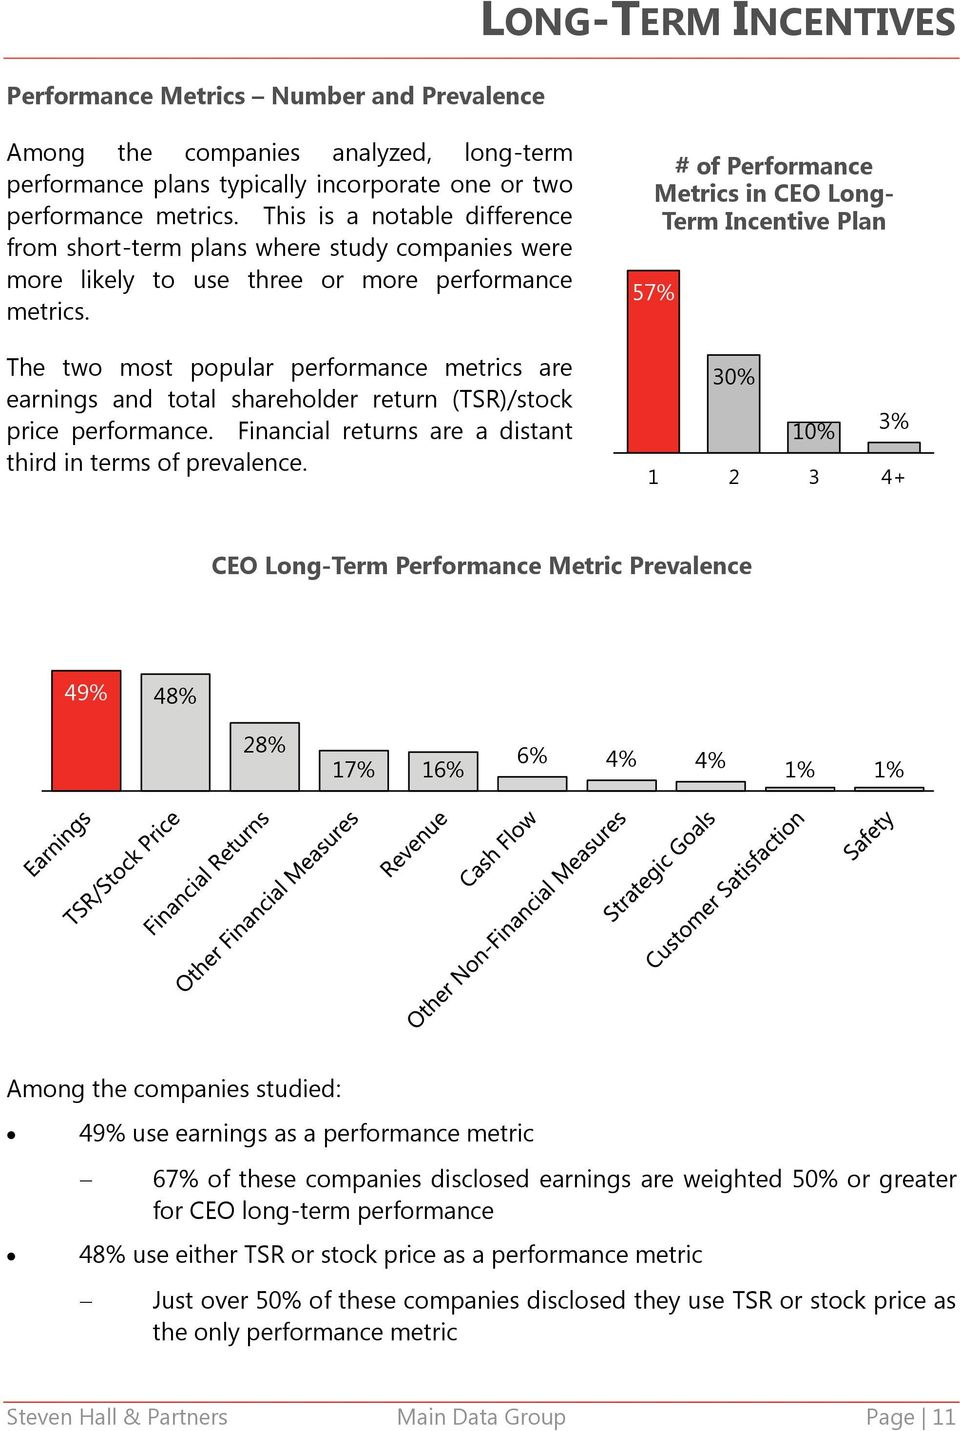 The two most popular performance metrics are earnings and total shareholder return (TSR)/stock price performance. Financial returns are a distant third in terms of prevalence.